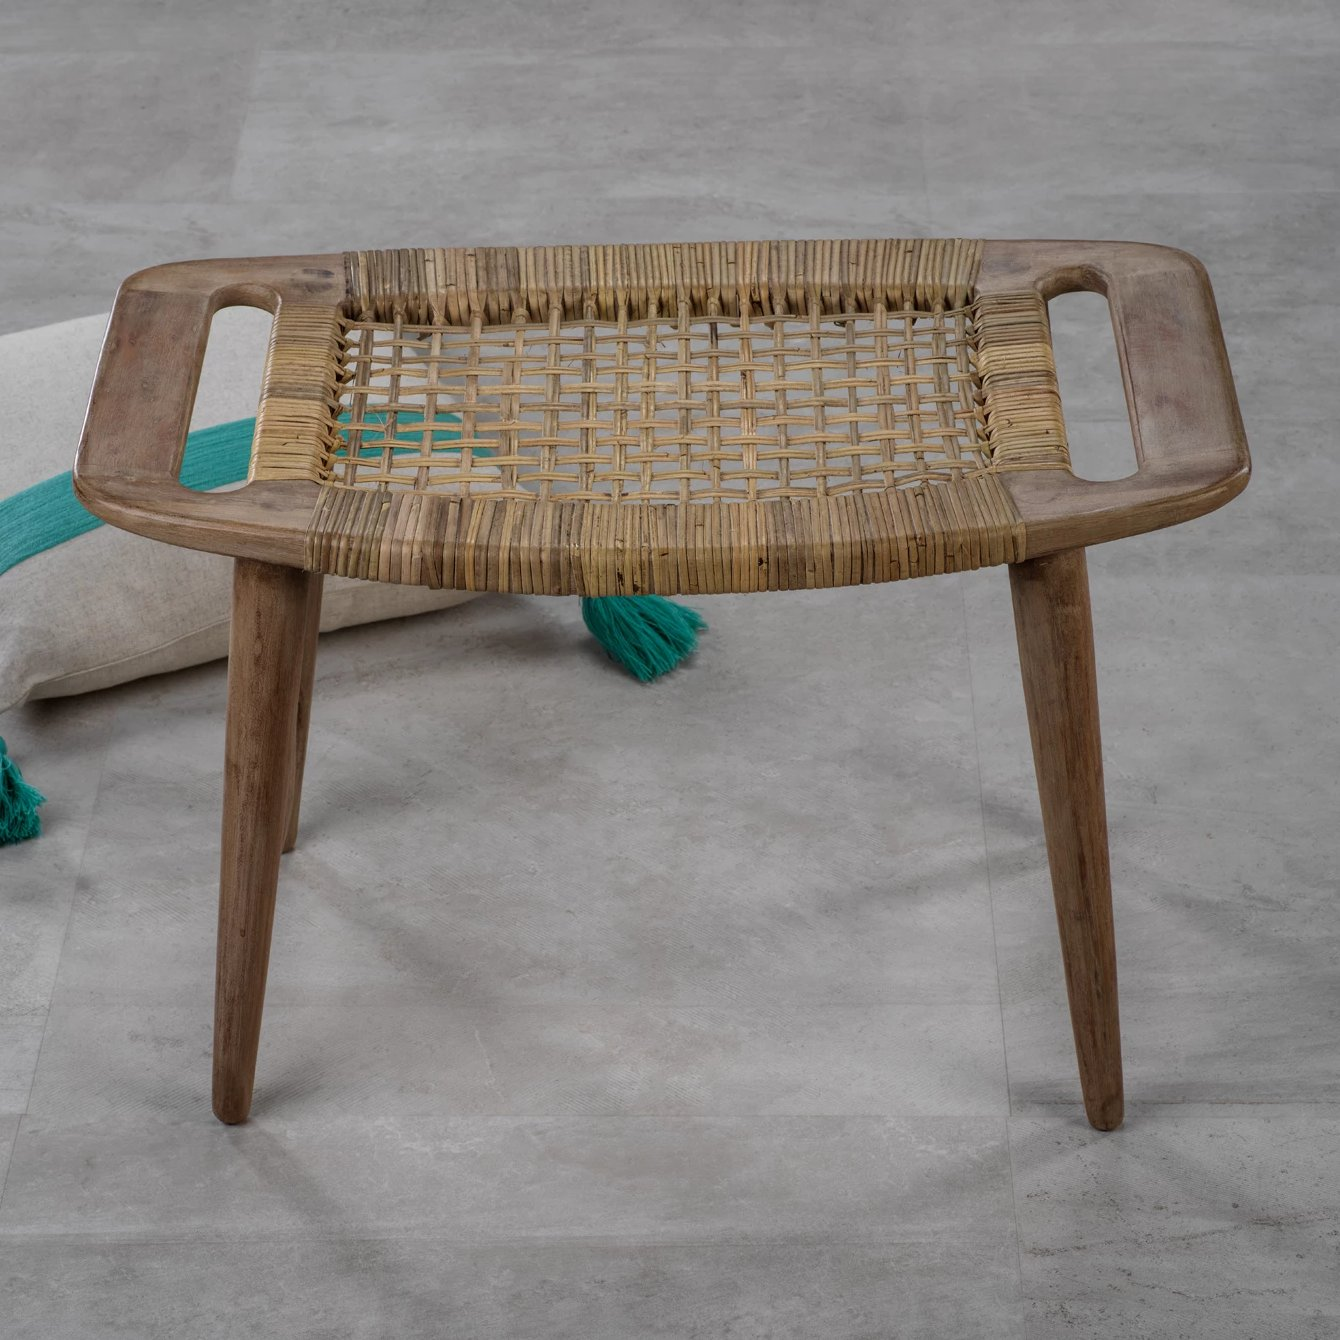 Sand River Mango Wood & Cane Stool - CARLYLE AVENUE